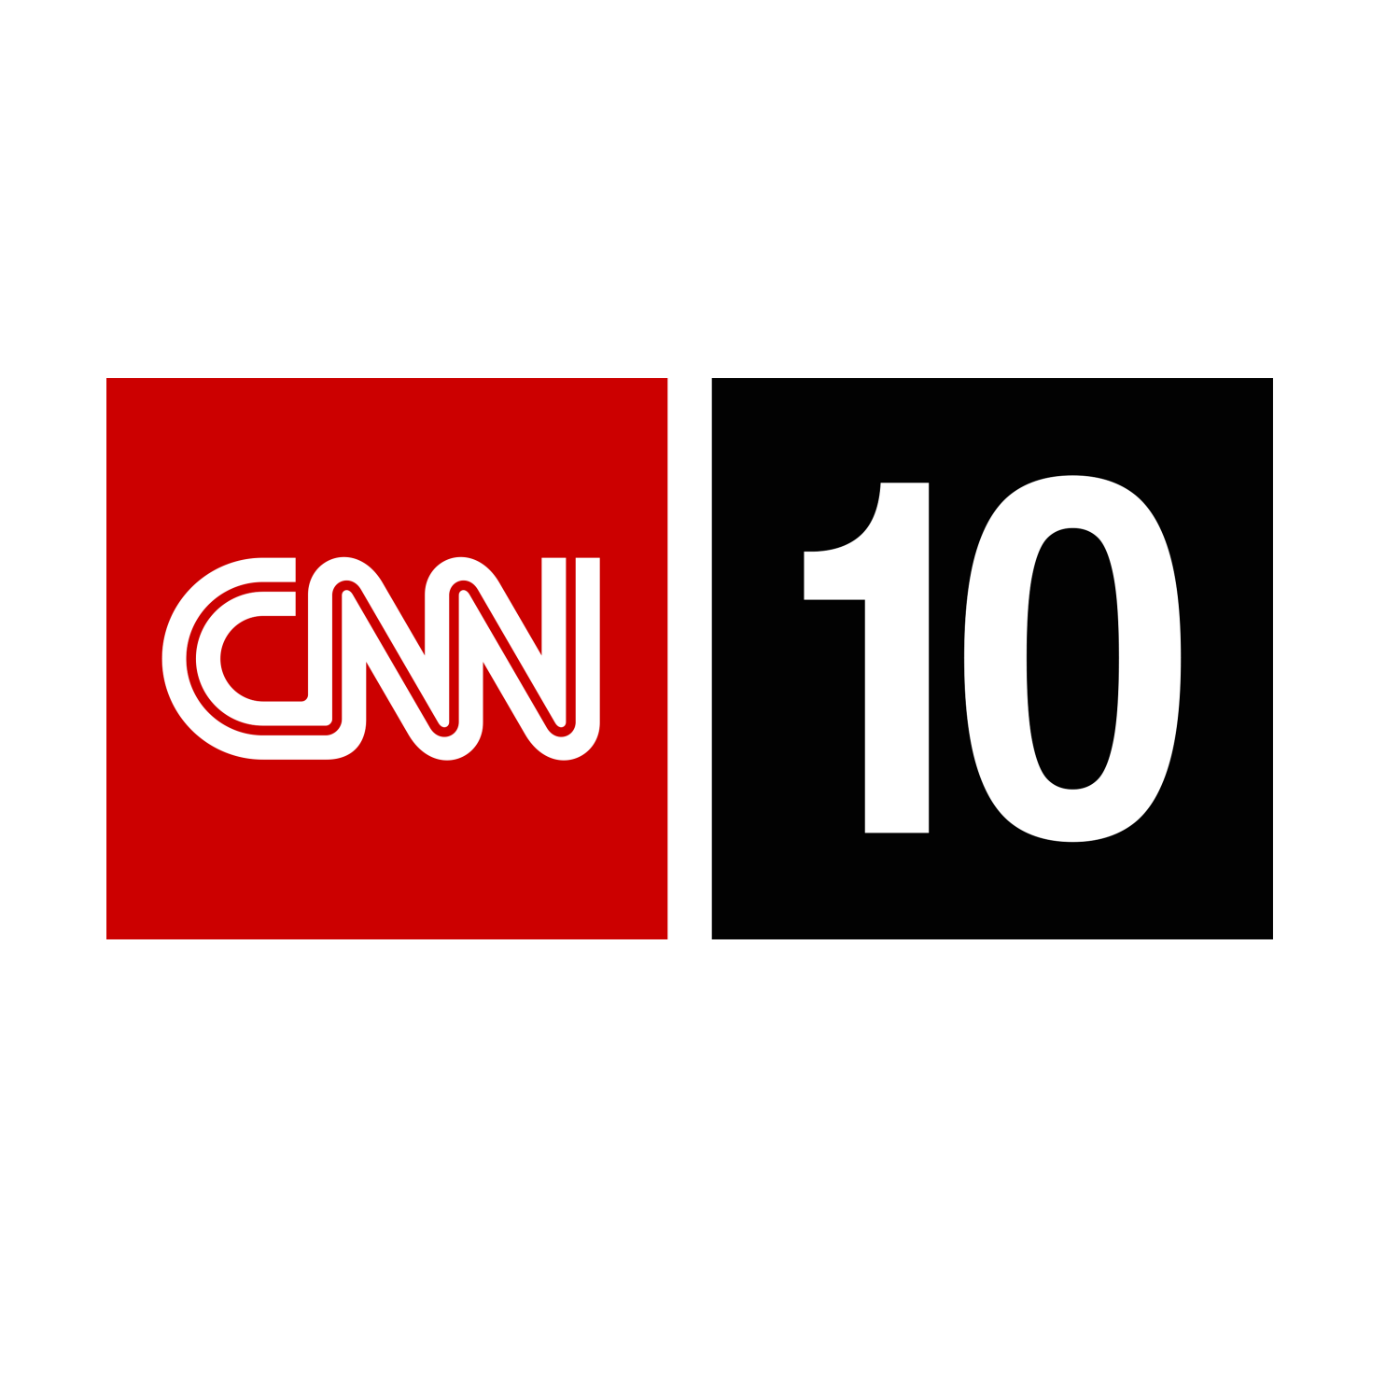 CNN Student News - January 28, 2013